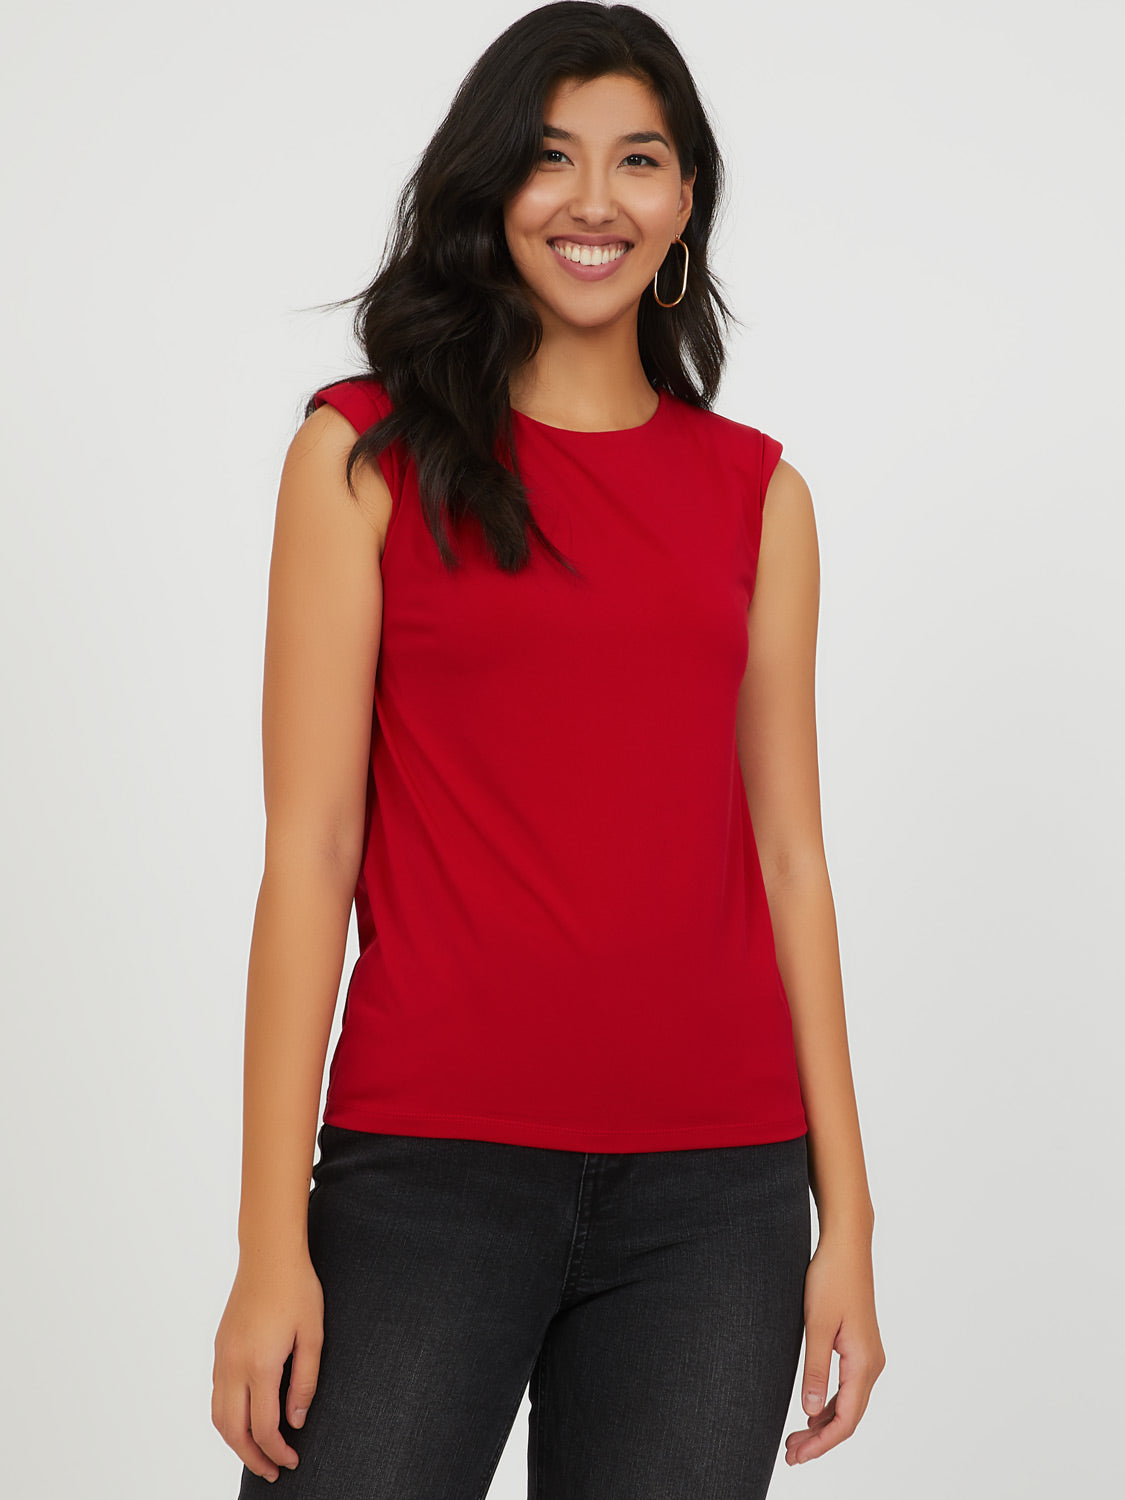 Sleeveless Shoulder Pad Top